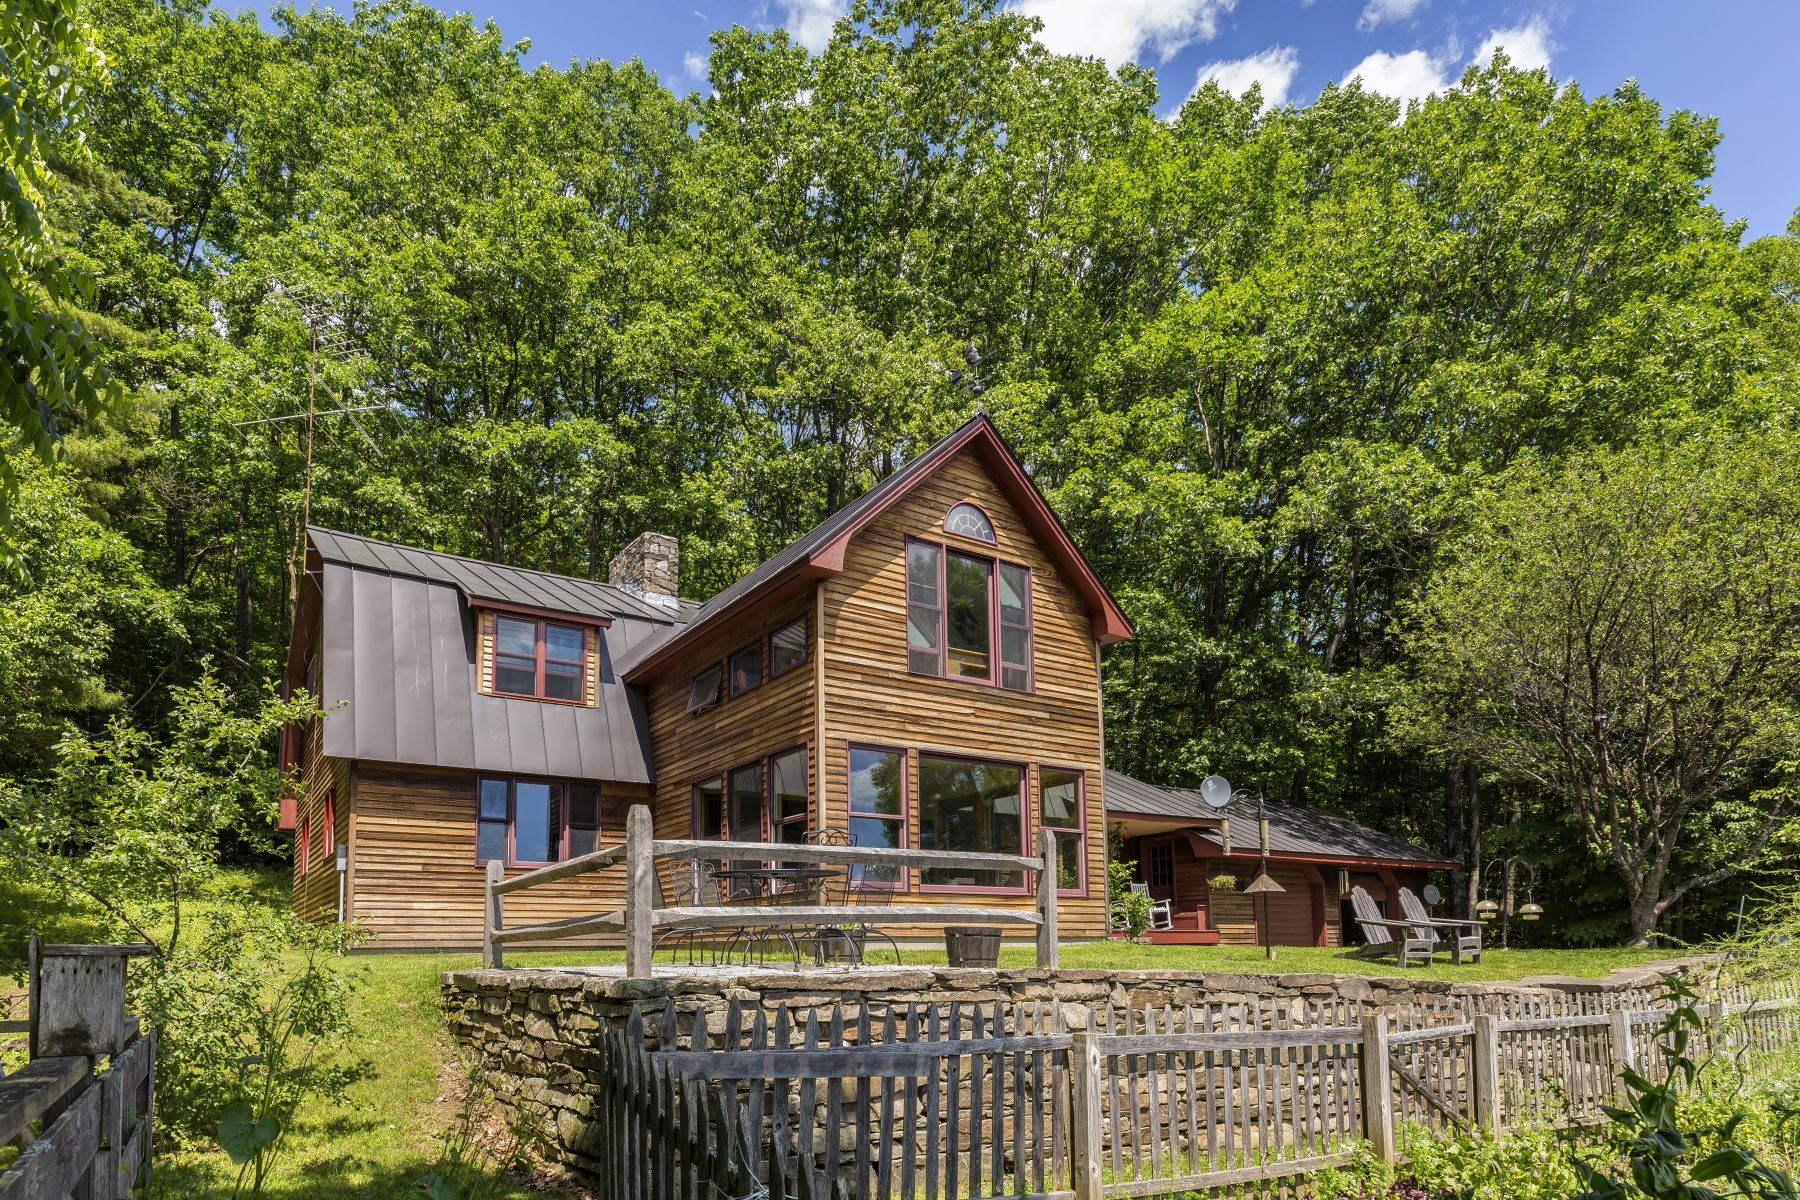 Single Family Homes for Sale at 1693 Five Corners Road, Thetford 1693 Five Corners Rd Thetford, Vermont 05074 United States